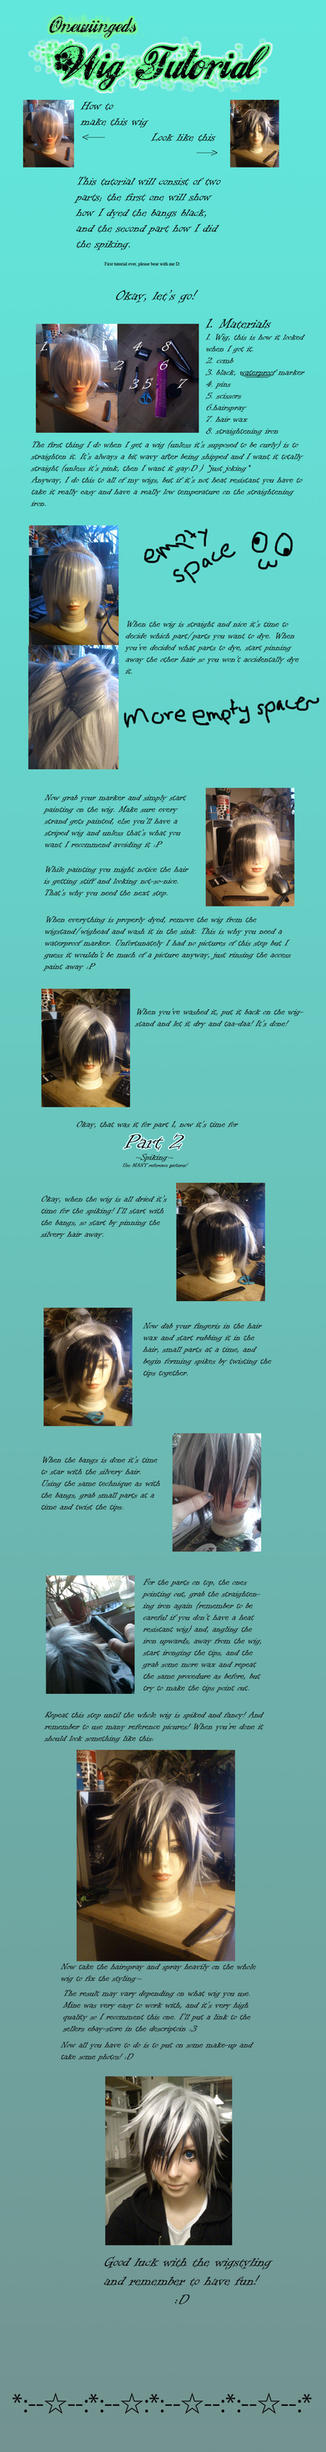 Tutorial: Wig dyeing and spiking by Onewiinged